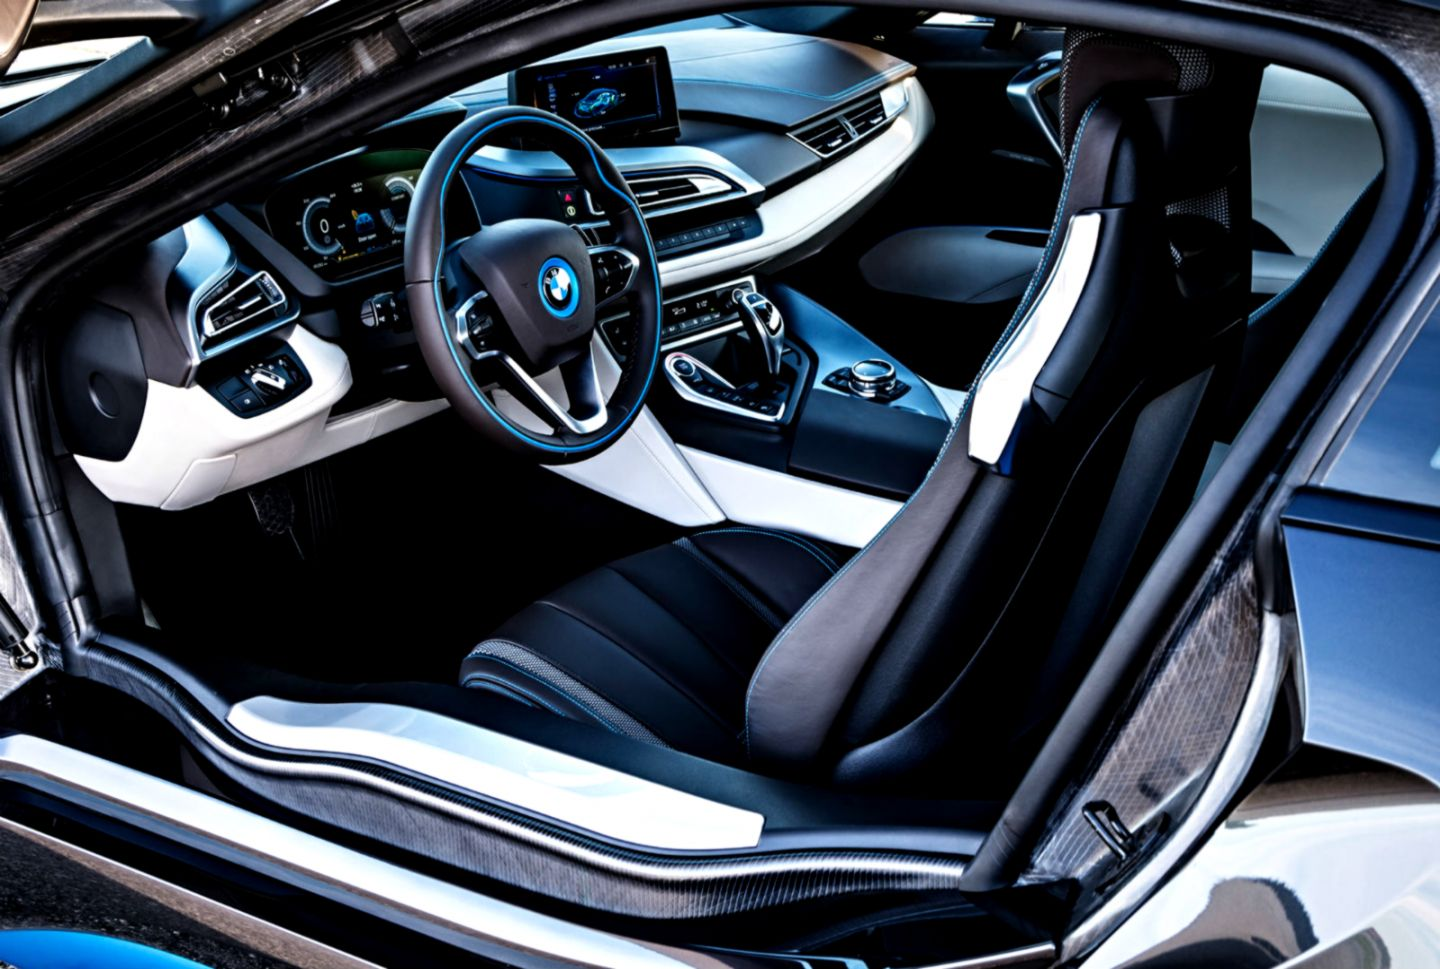 Bmw I8 Interior Screensaver Wallpapers App